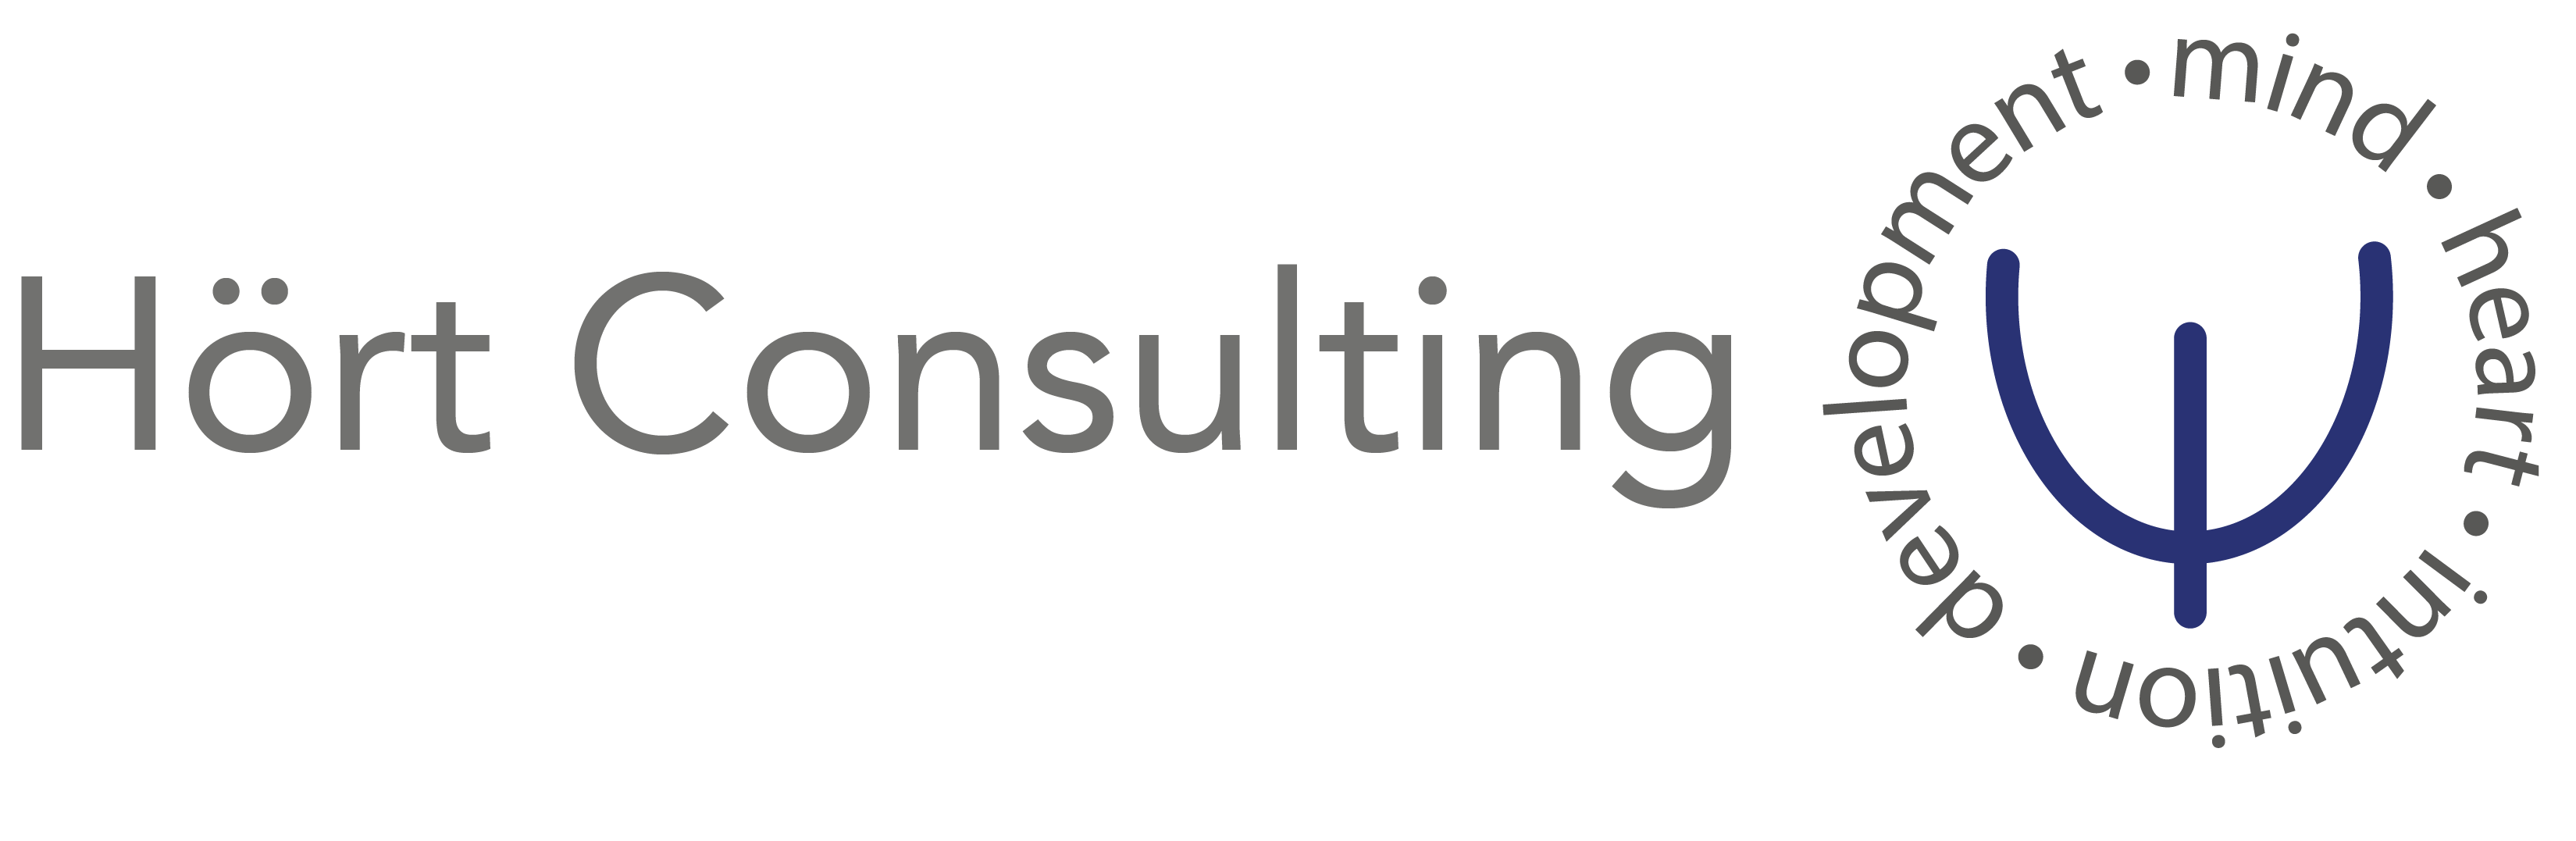 Hoert Consulting